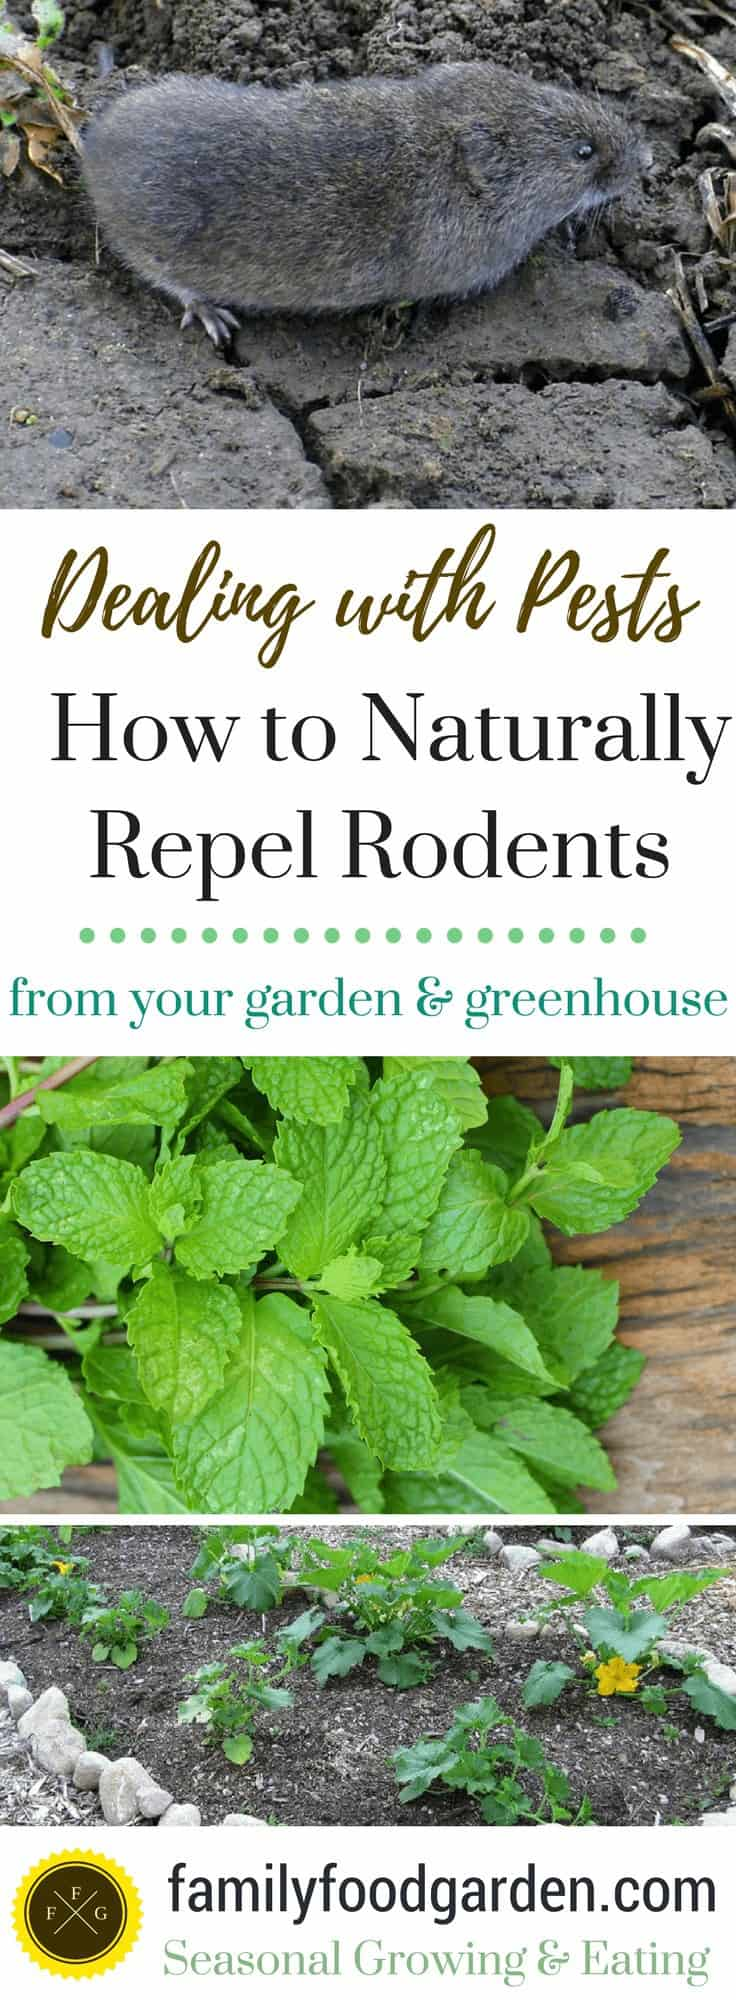 Natural Ways to Repel Rodents from your Garden